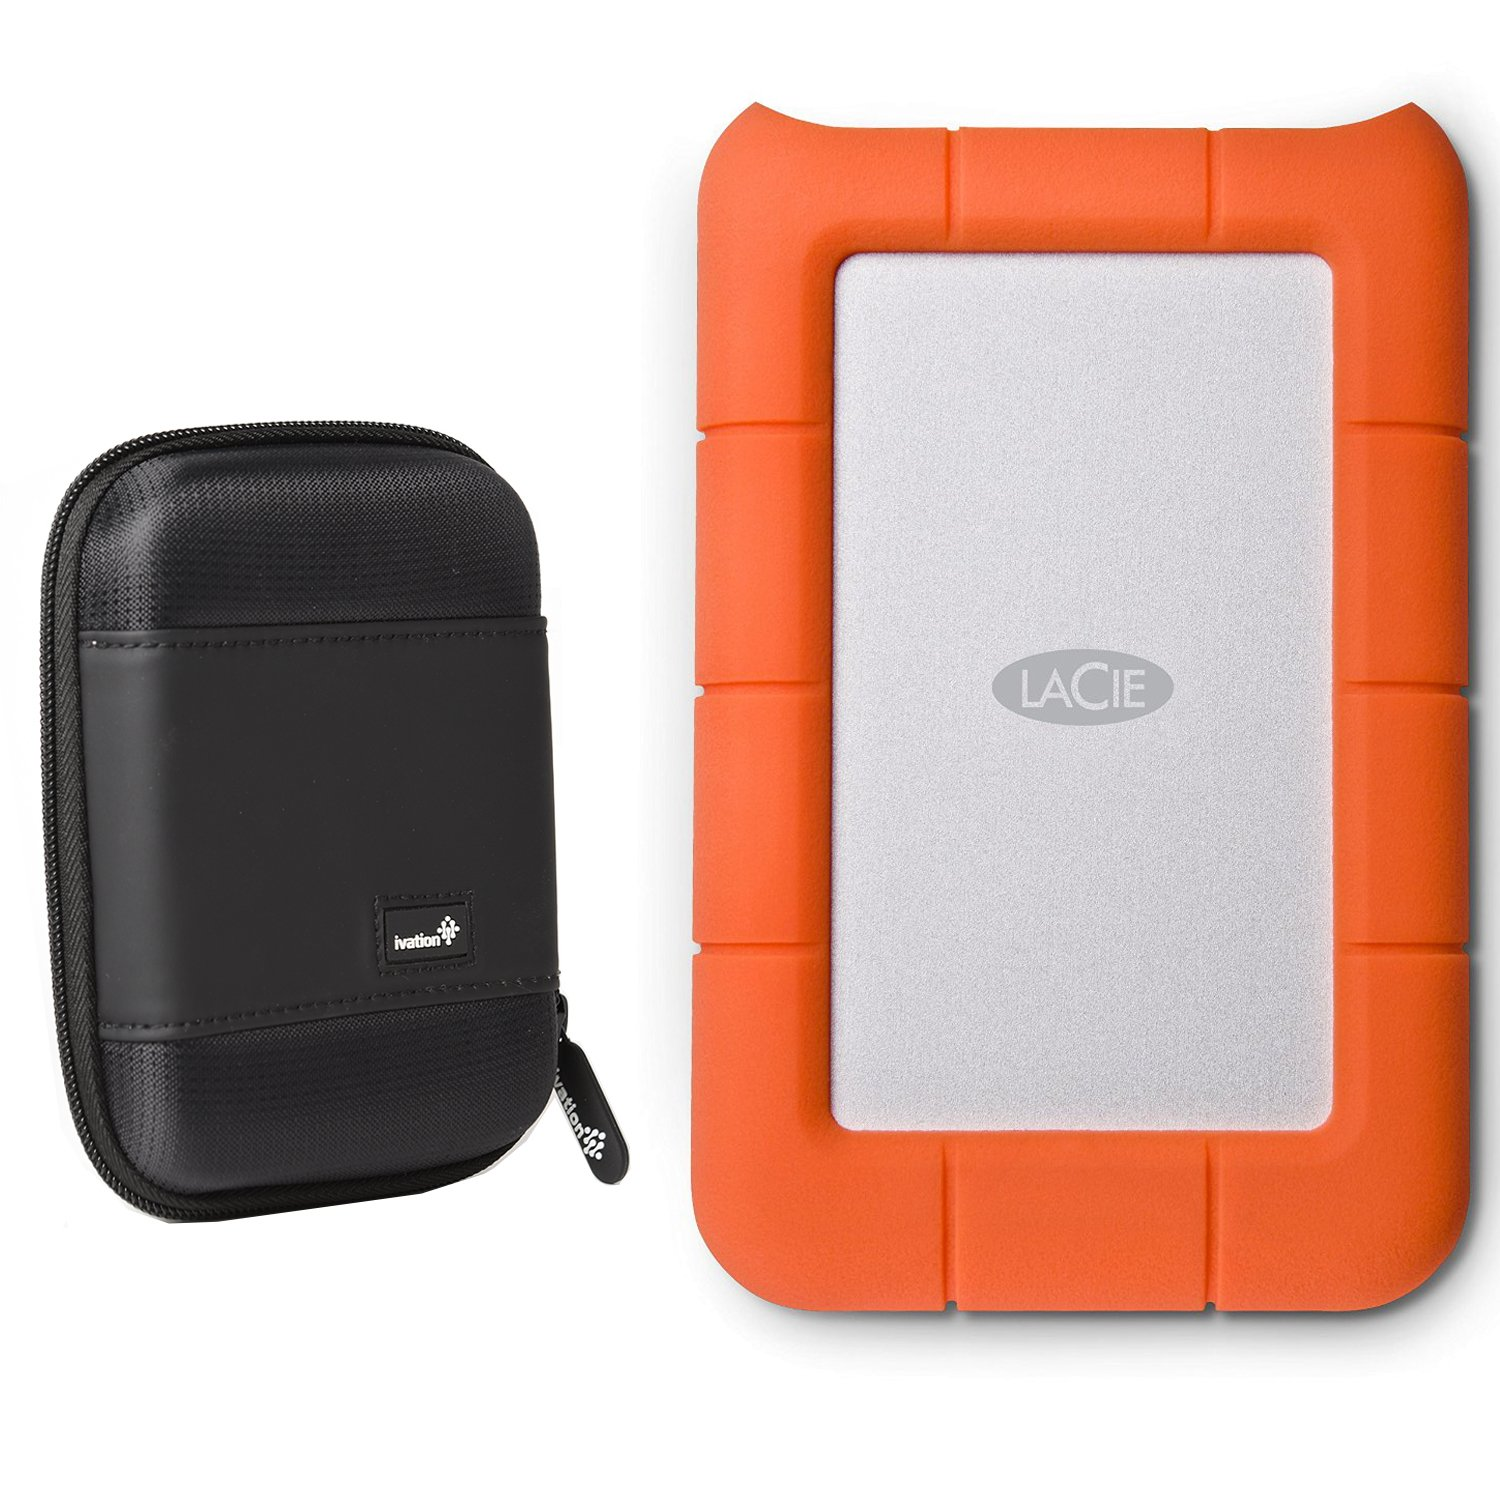 LaCie Rugged Mini USB 3.0 / USB 2.0 2TB External Mobile Hard Drive 9000298 with Ivation Compact Portable Hard Drive Case by Calumet (Image #1)